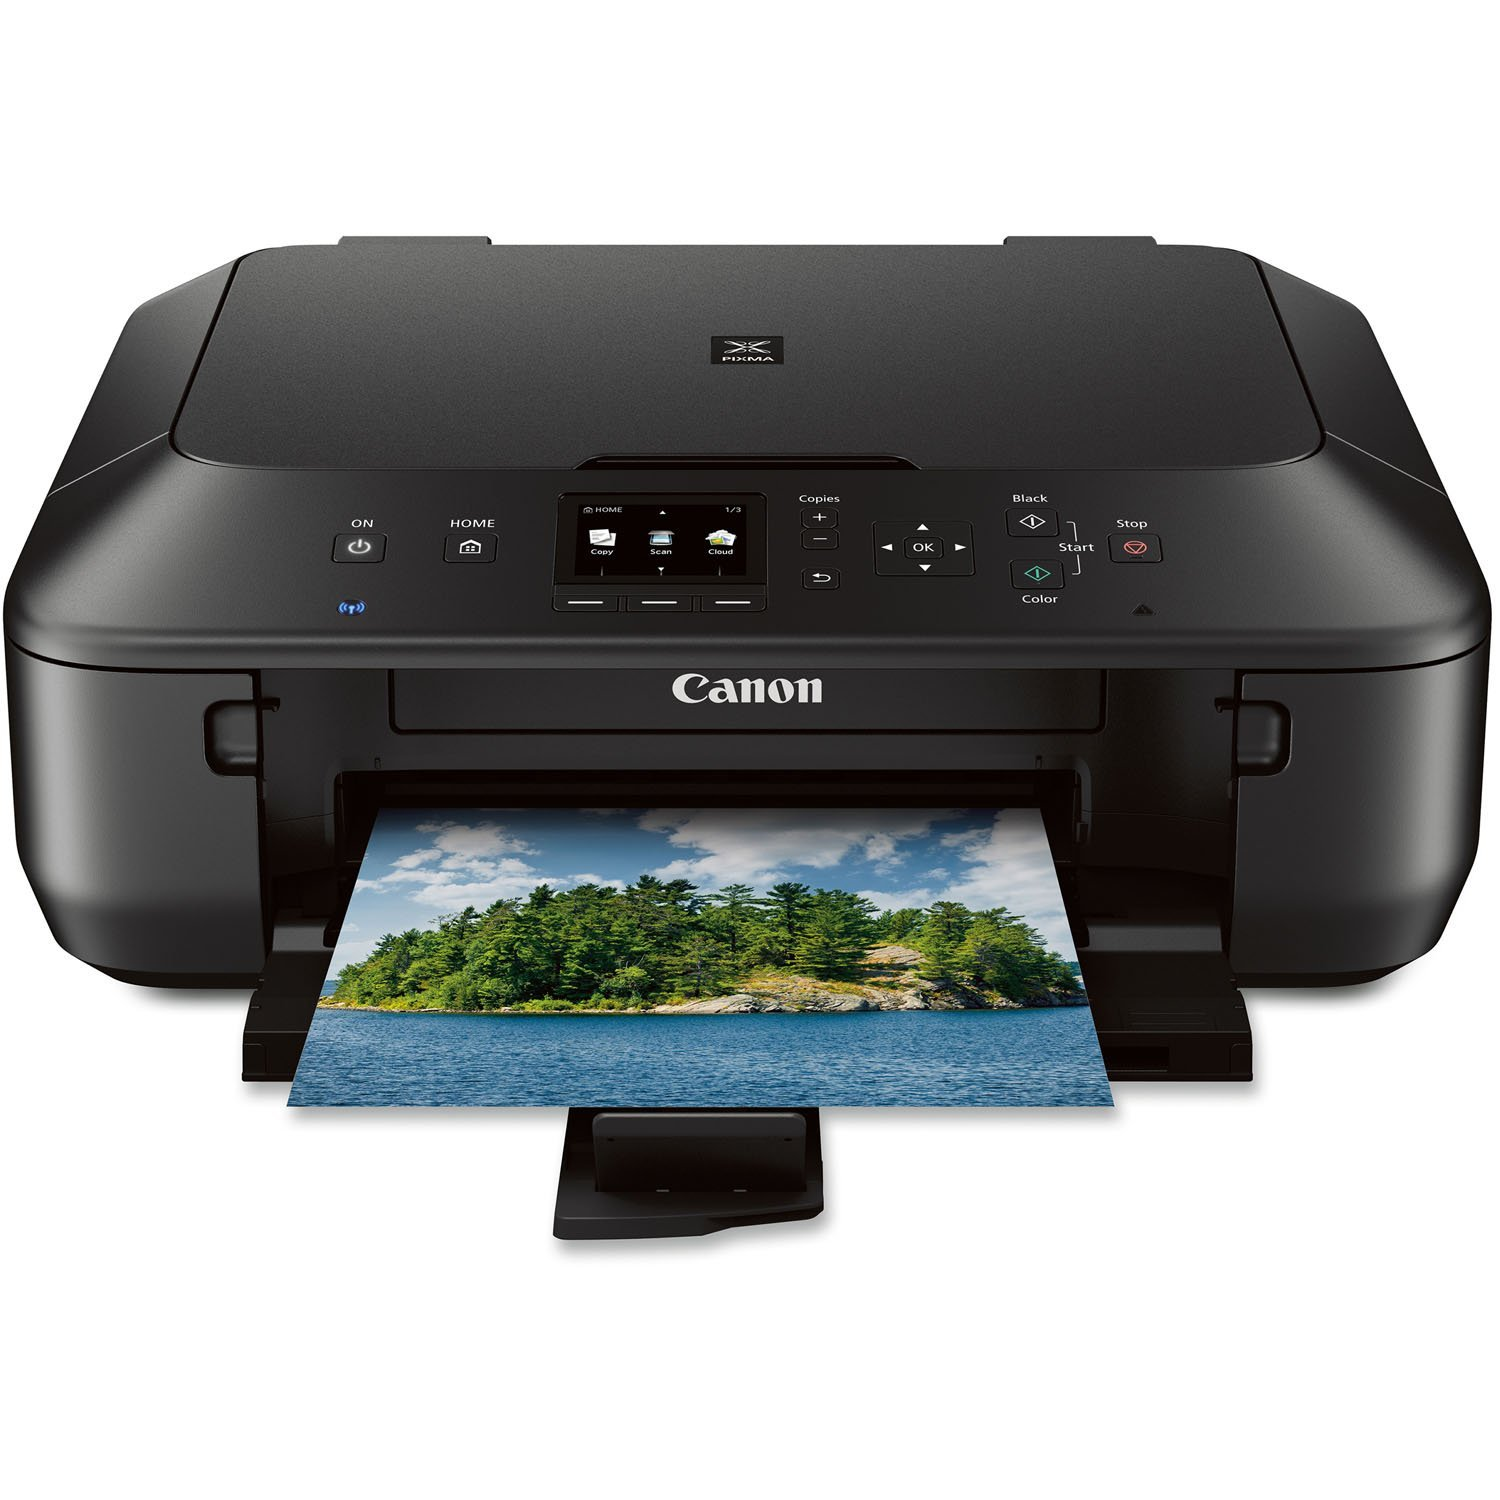 Canon PIXMA MG5520 Wireless All-In-One Color Photo Printer with Scanner, Copier and Auto Duplex Printing